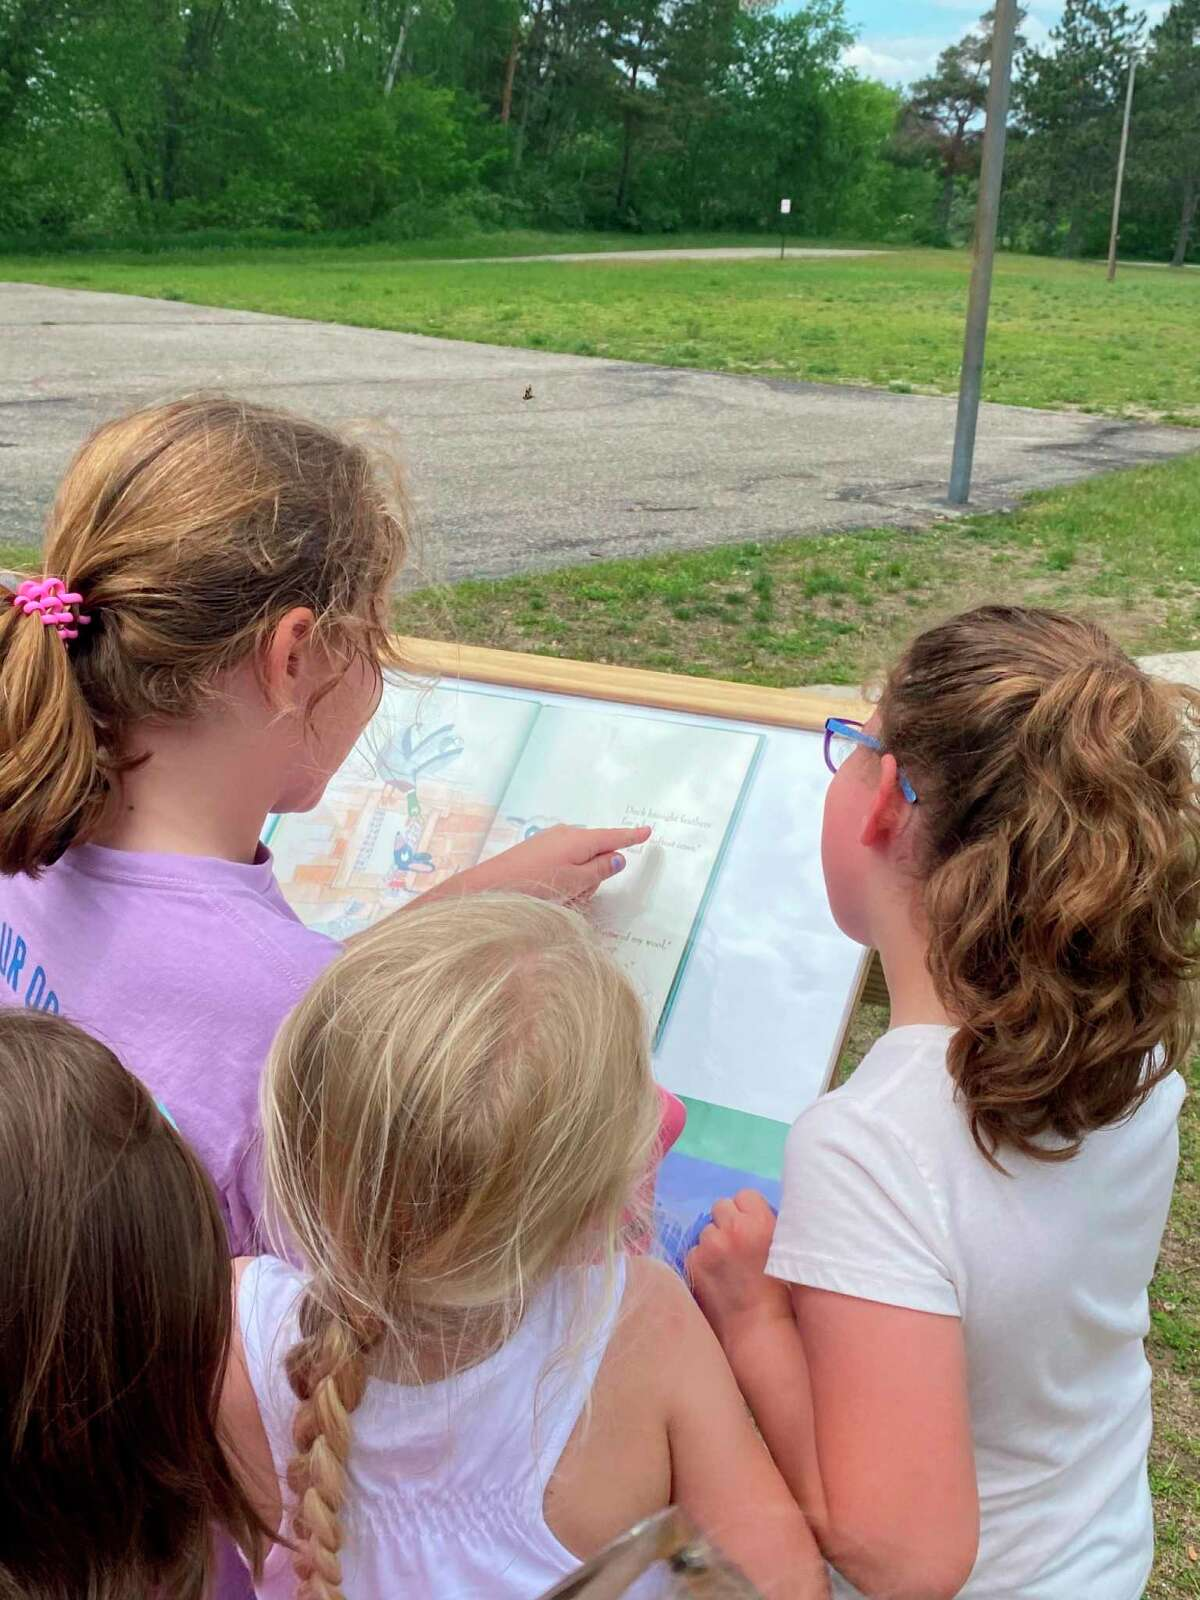 Kylene Nix, a Reed City teacher who also serves as treasurer with the RCADL, had her first-grade class from G.T. Norman Schools visit the StoryWalk in Westburg Park. (Courtesy/Kylene Nix)